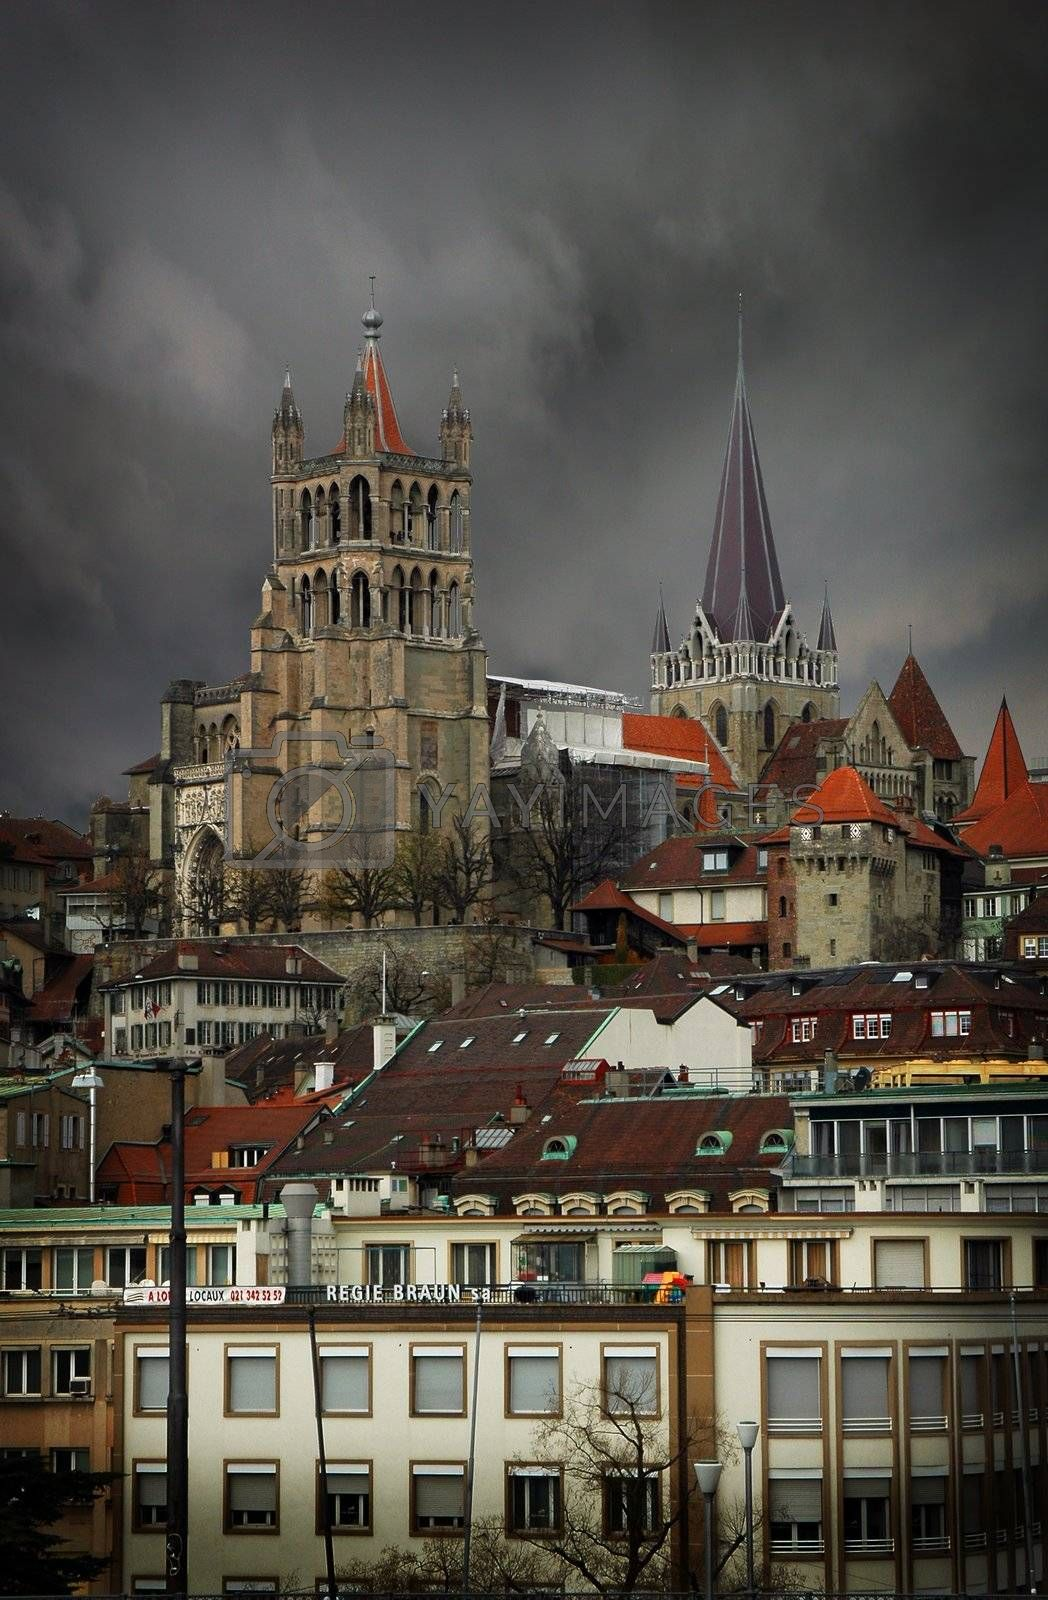 Portrait image of Lausanne showing steeples with a dramatic sky.